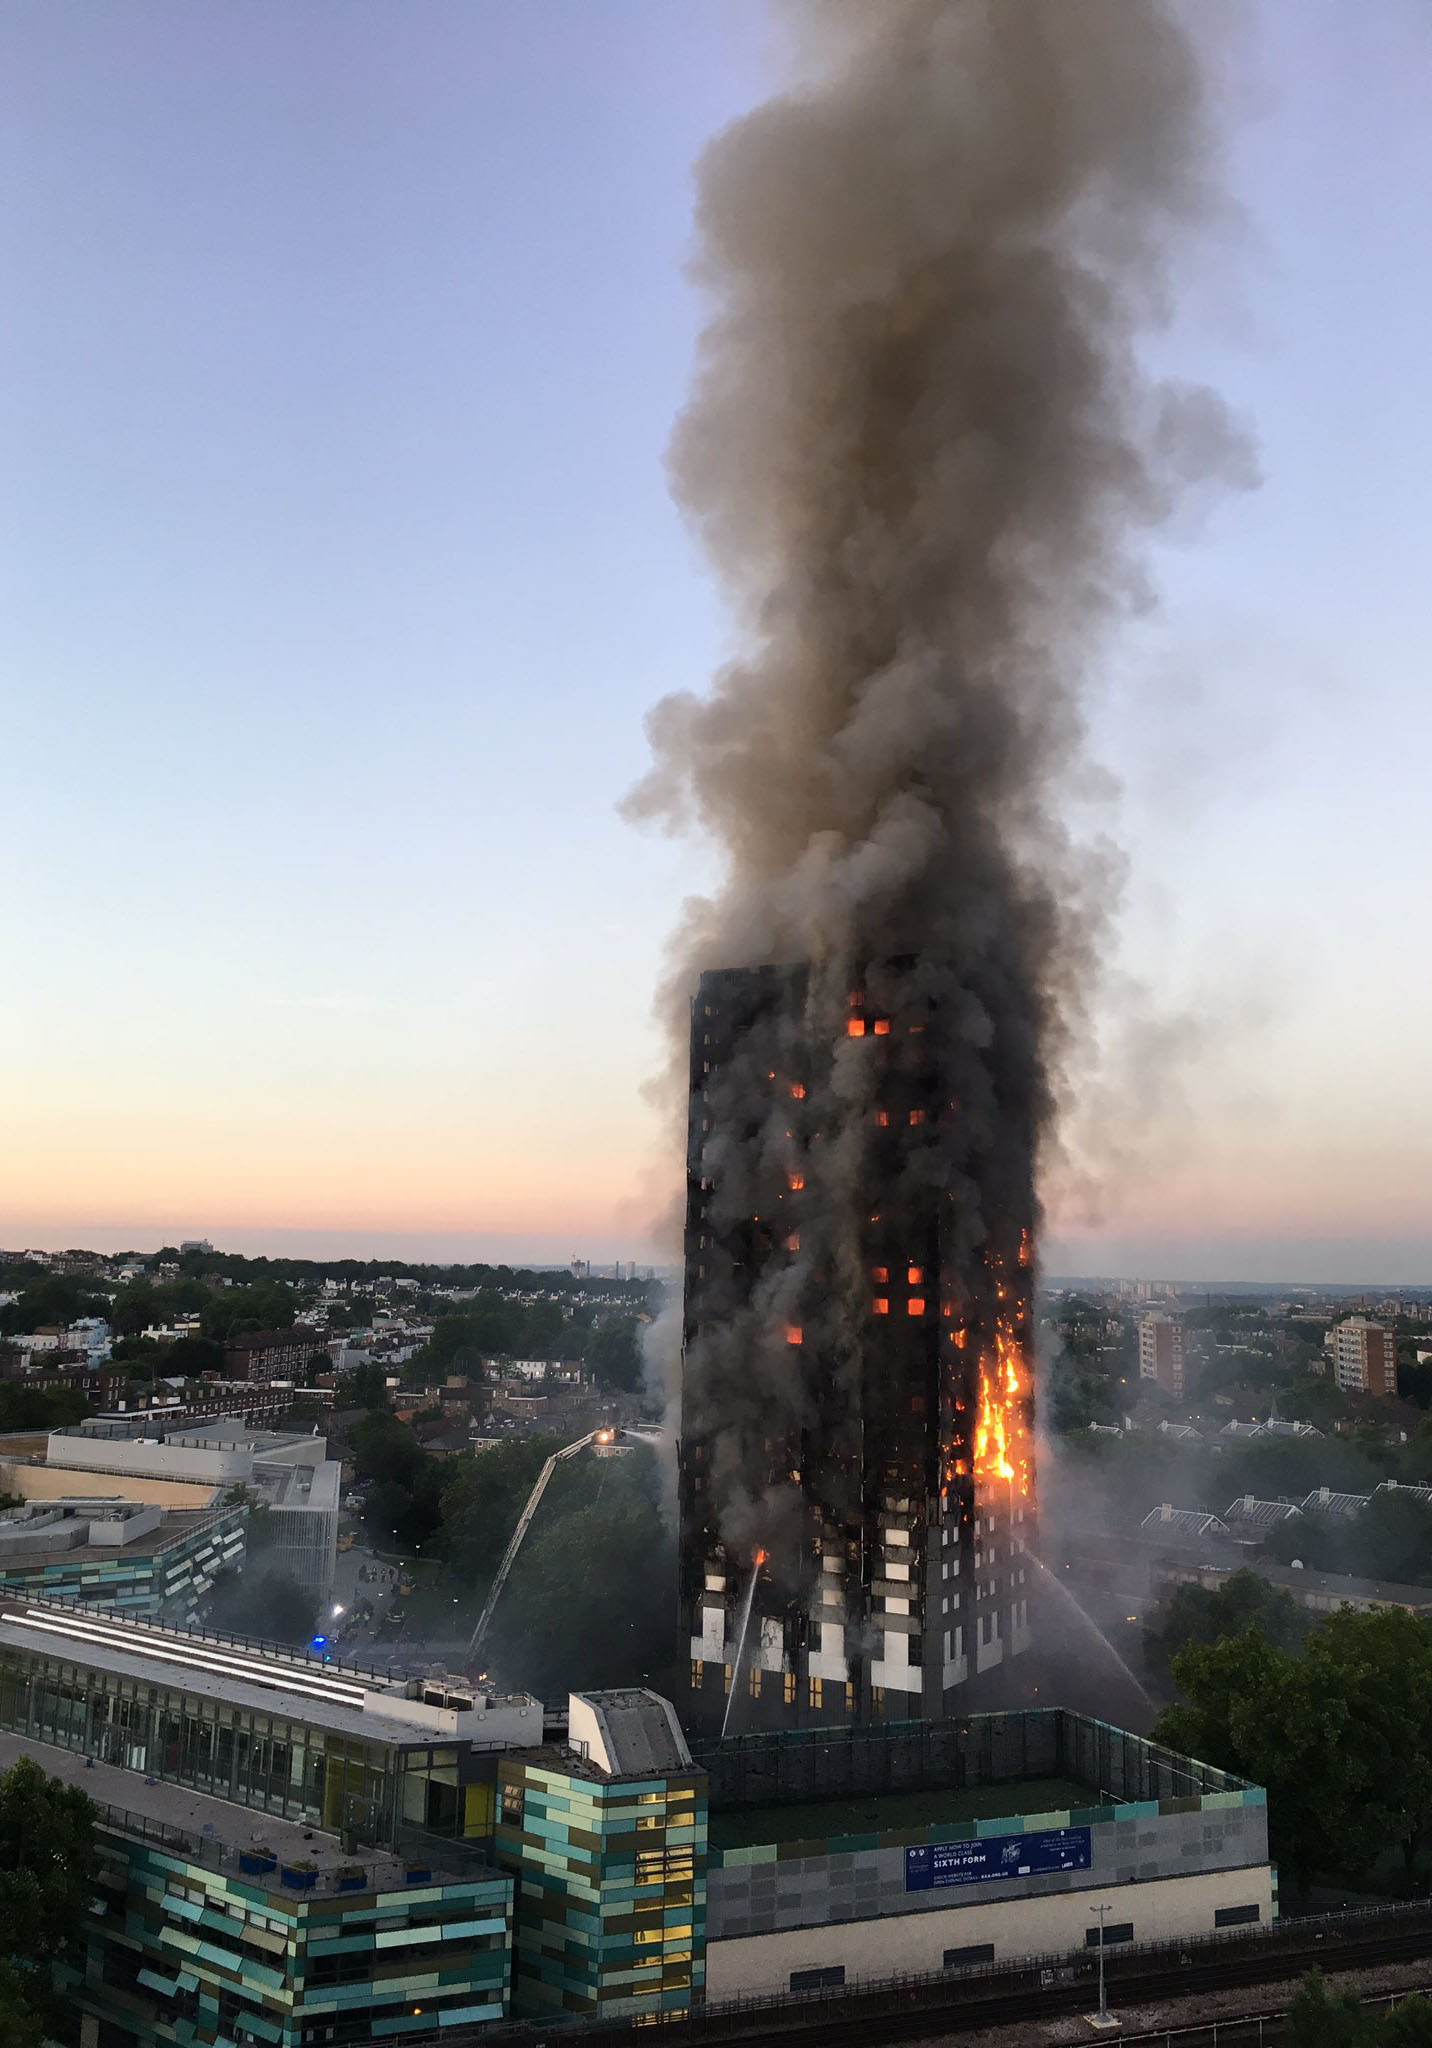 The Grenfell Tower fire in 2017